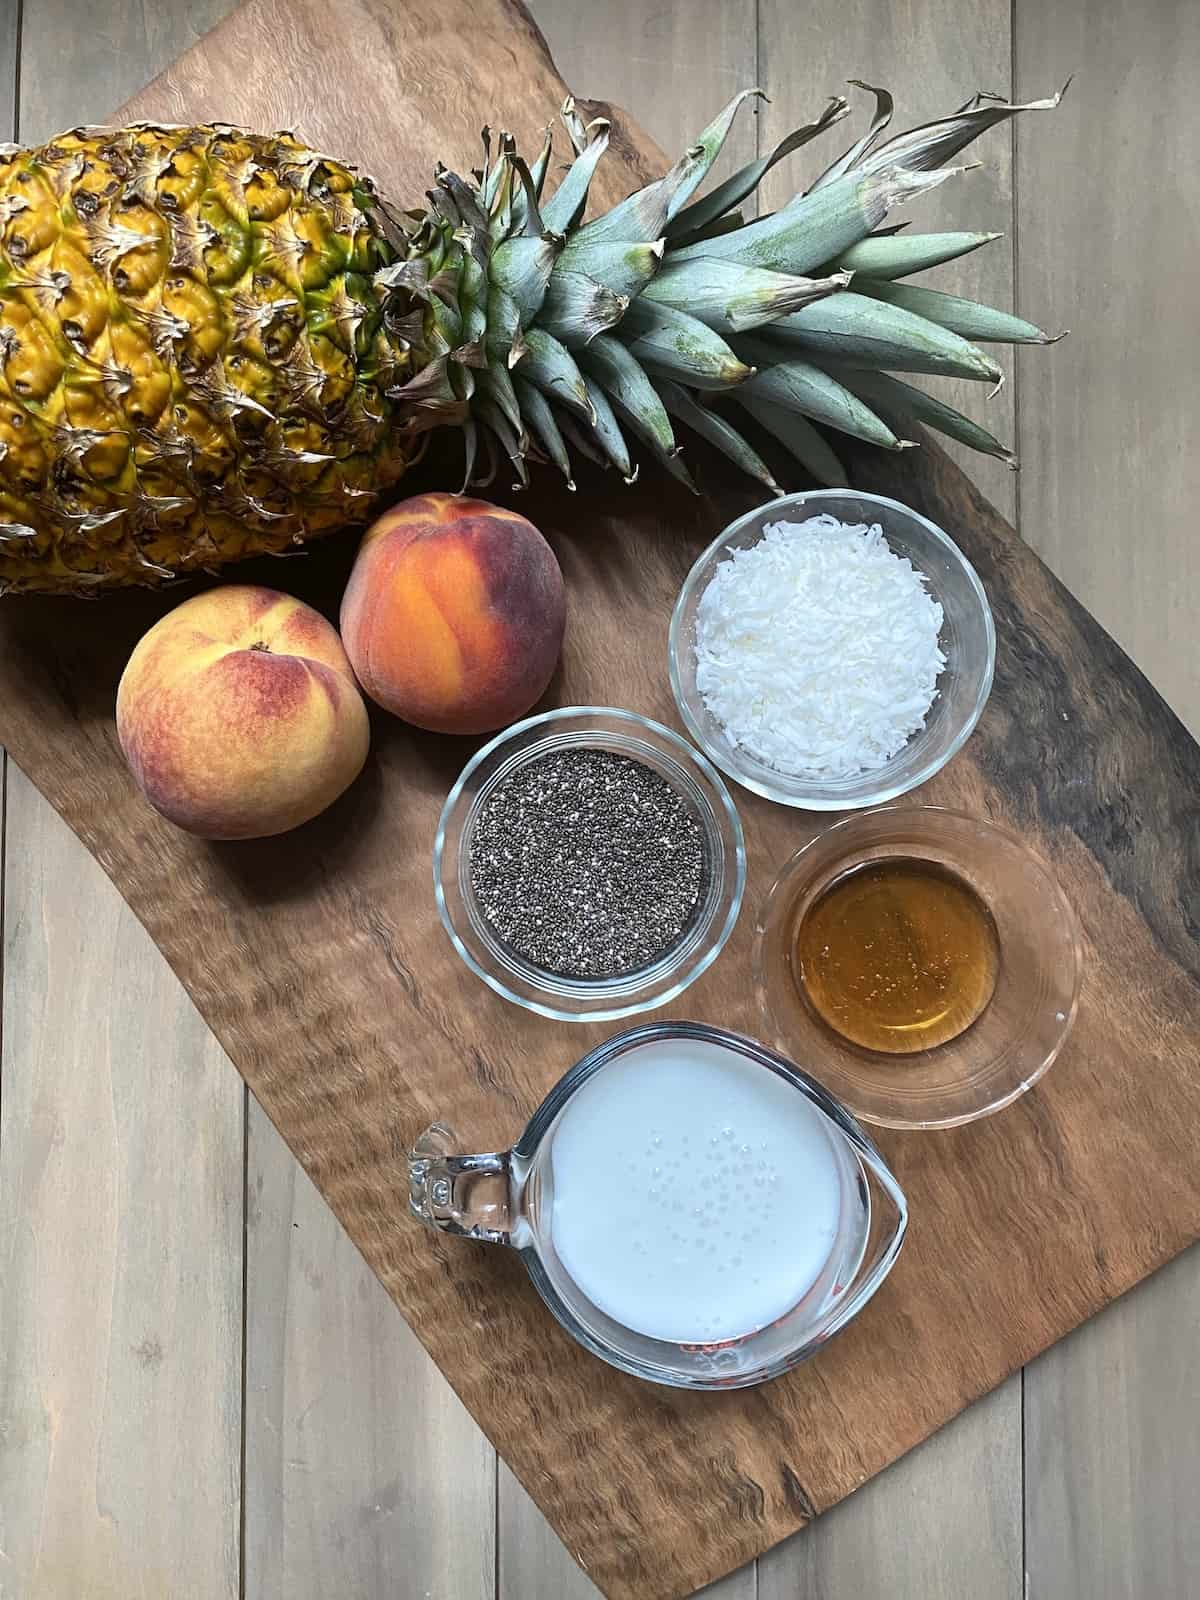 Pineapple, peaches, chia seeds, coconut, honey, and coconut milk on a wood cutting board.